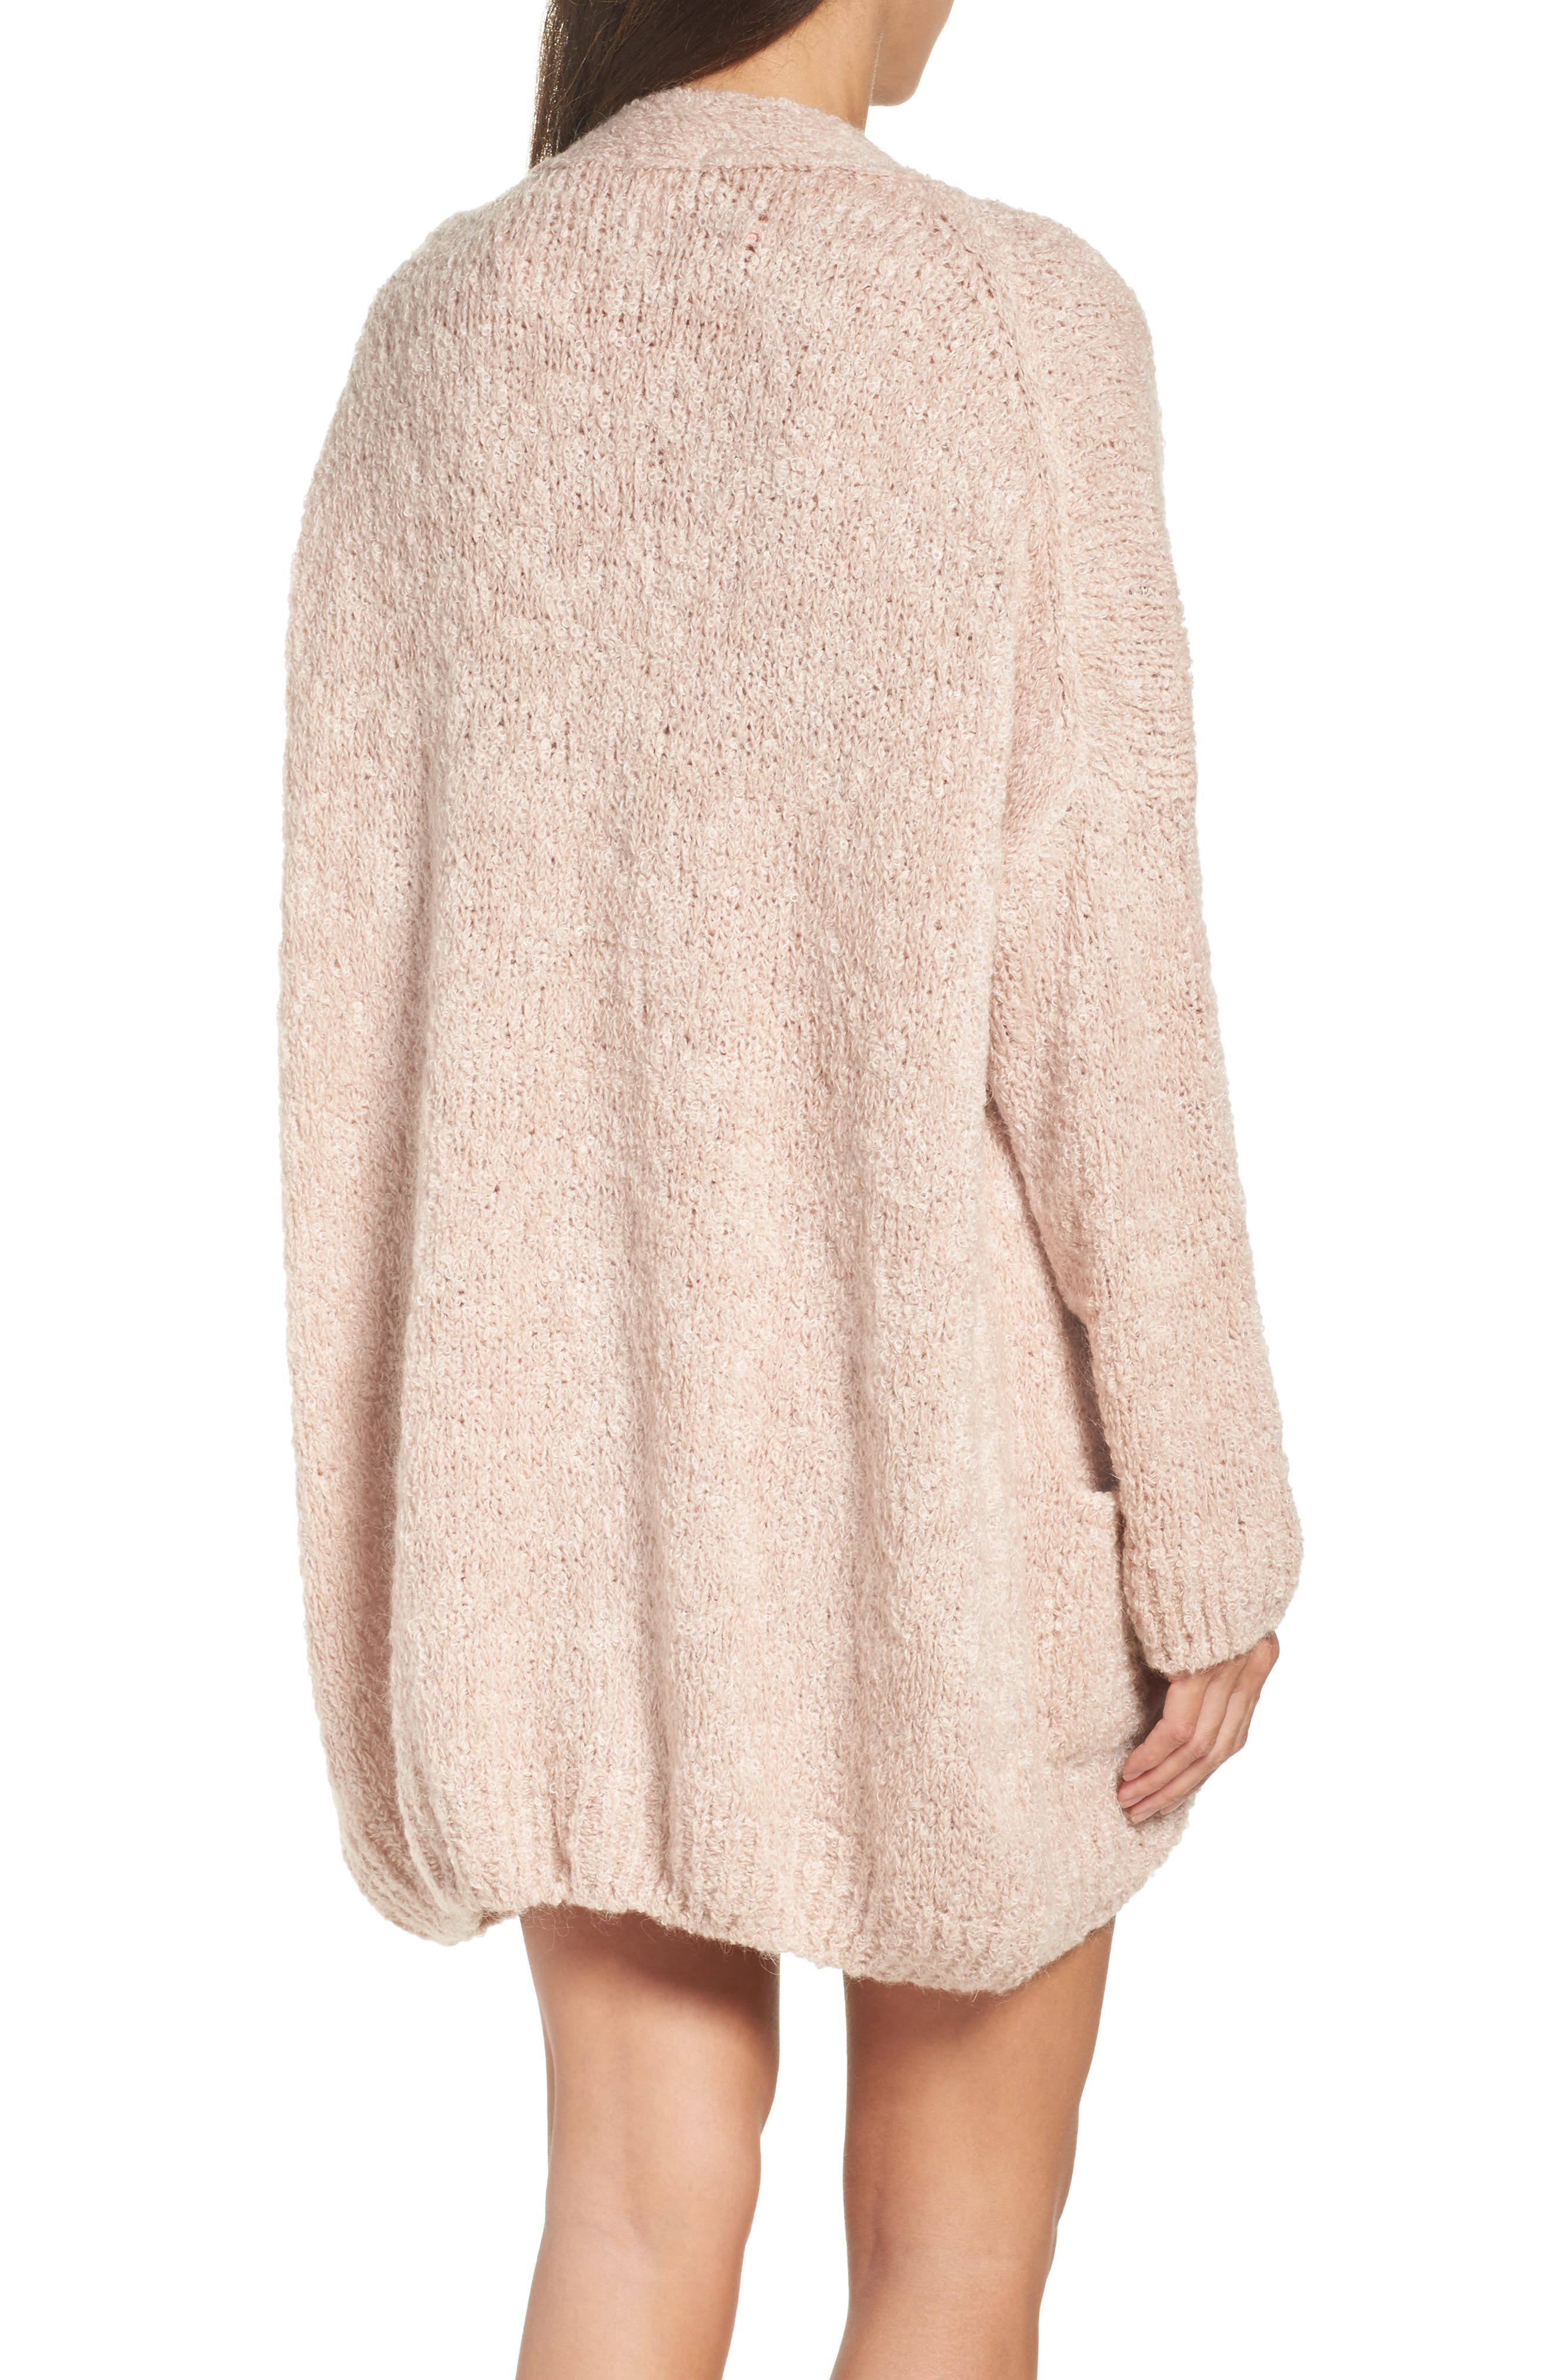 Lana Oversize Cardigan,                             Alternate thumbnail 2, color,                             Cameo Pink